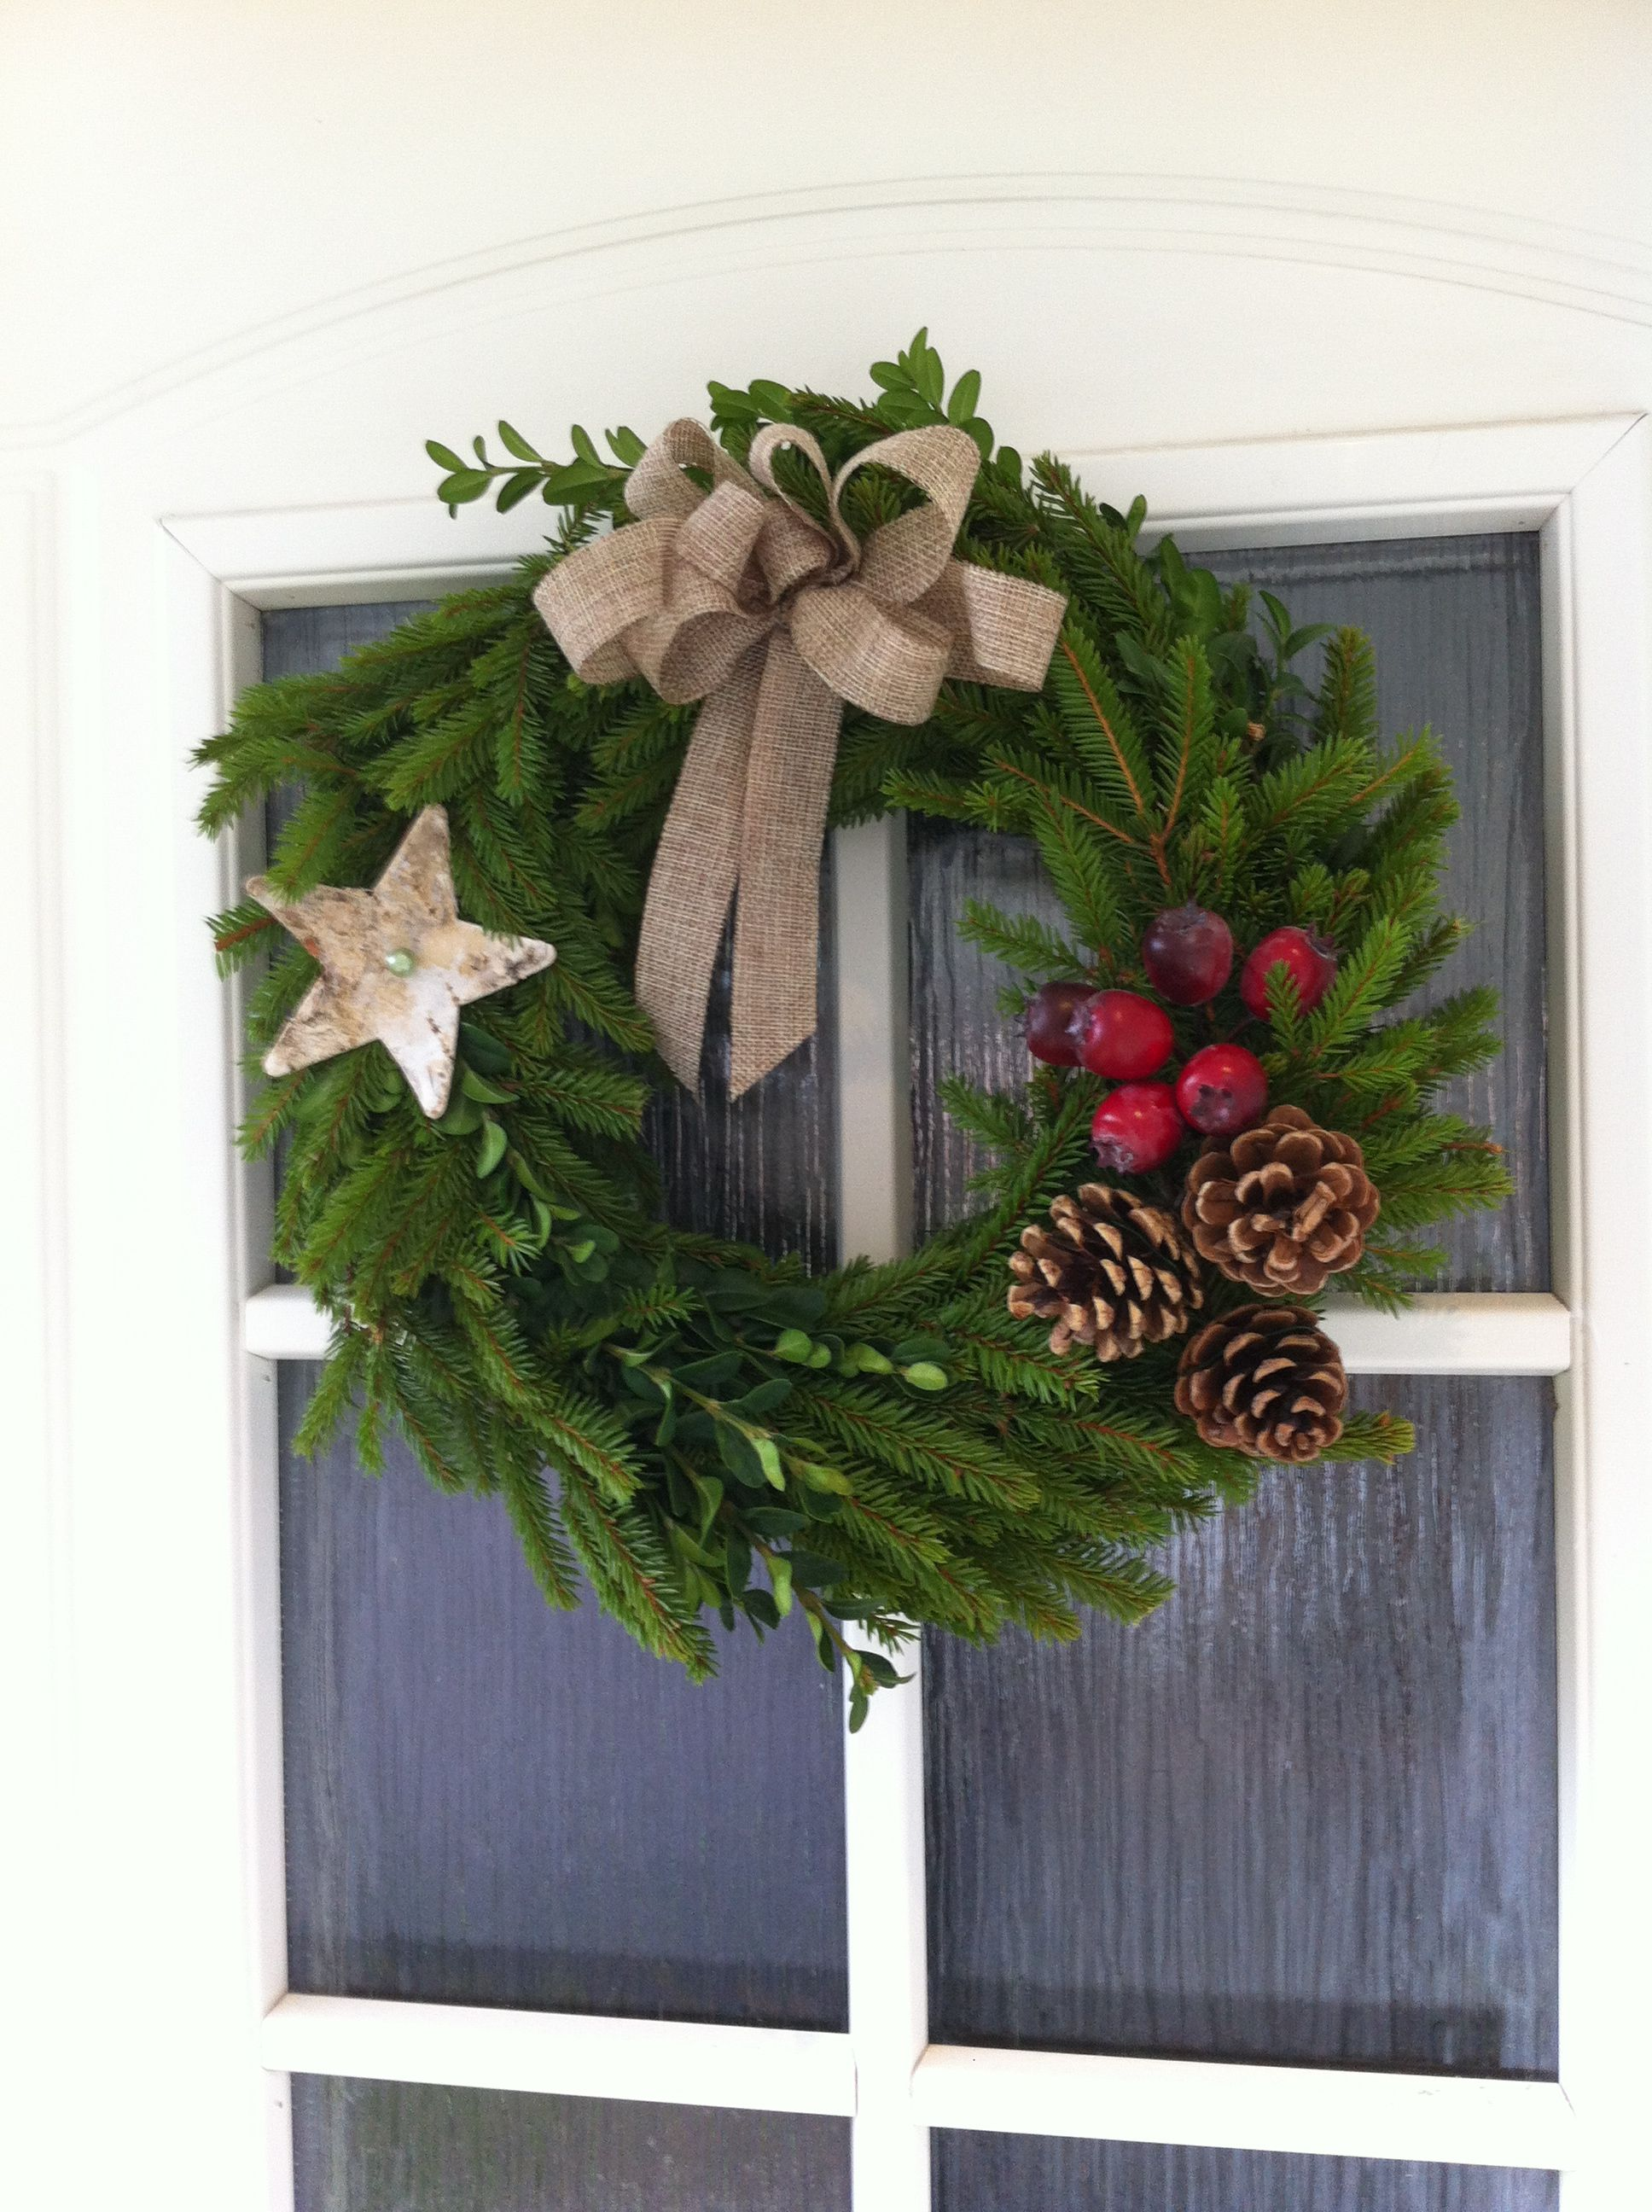 Outdoor Flowers, Hobby Craft, Norma Cano, Advent, Christmas Wreaths, Winter